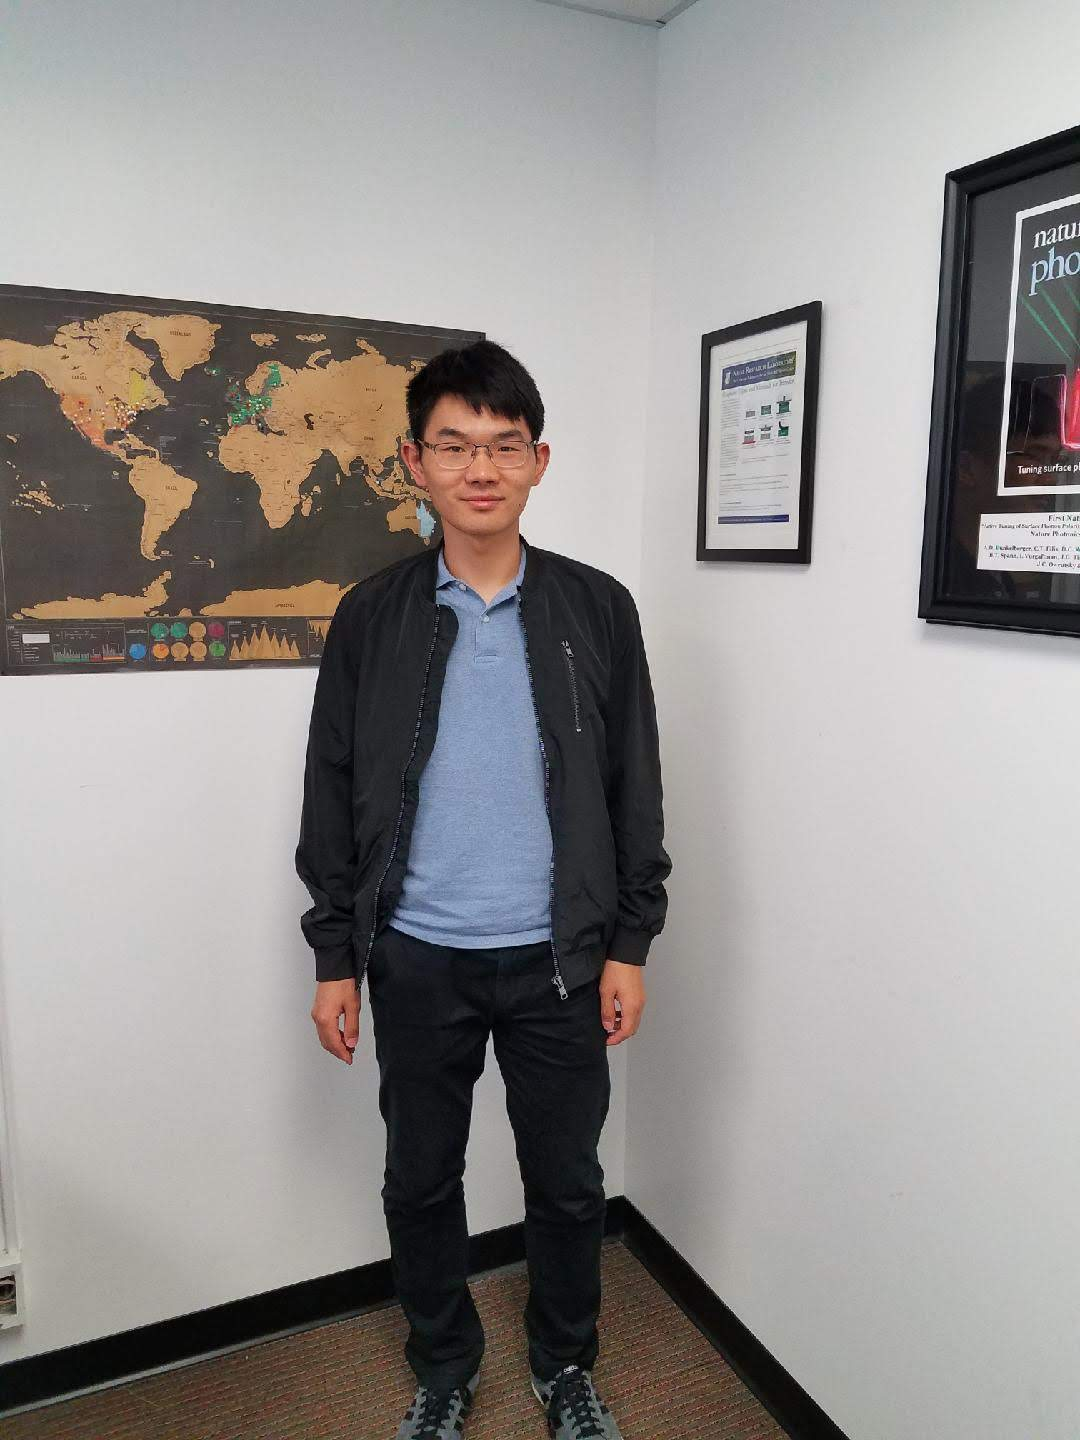 Mr. Mingze He joined the Caldwell Lab from the fall semester of 2018 as a graduate student in Mechanical Engineering at Vanderbilt. He comes to us from Huazhong University of Science and Technology, China, where he majored in Electrical Engineering.